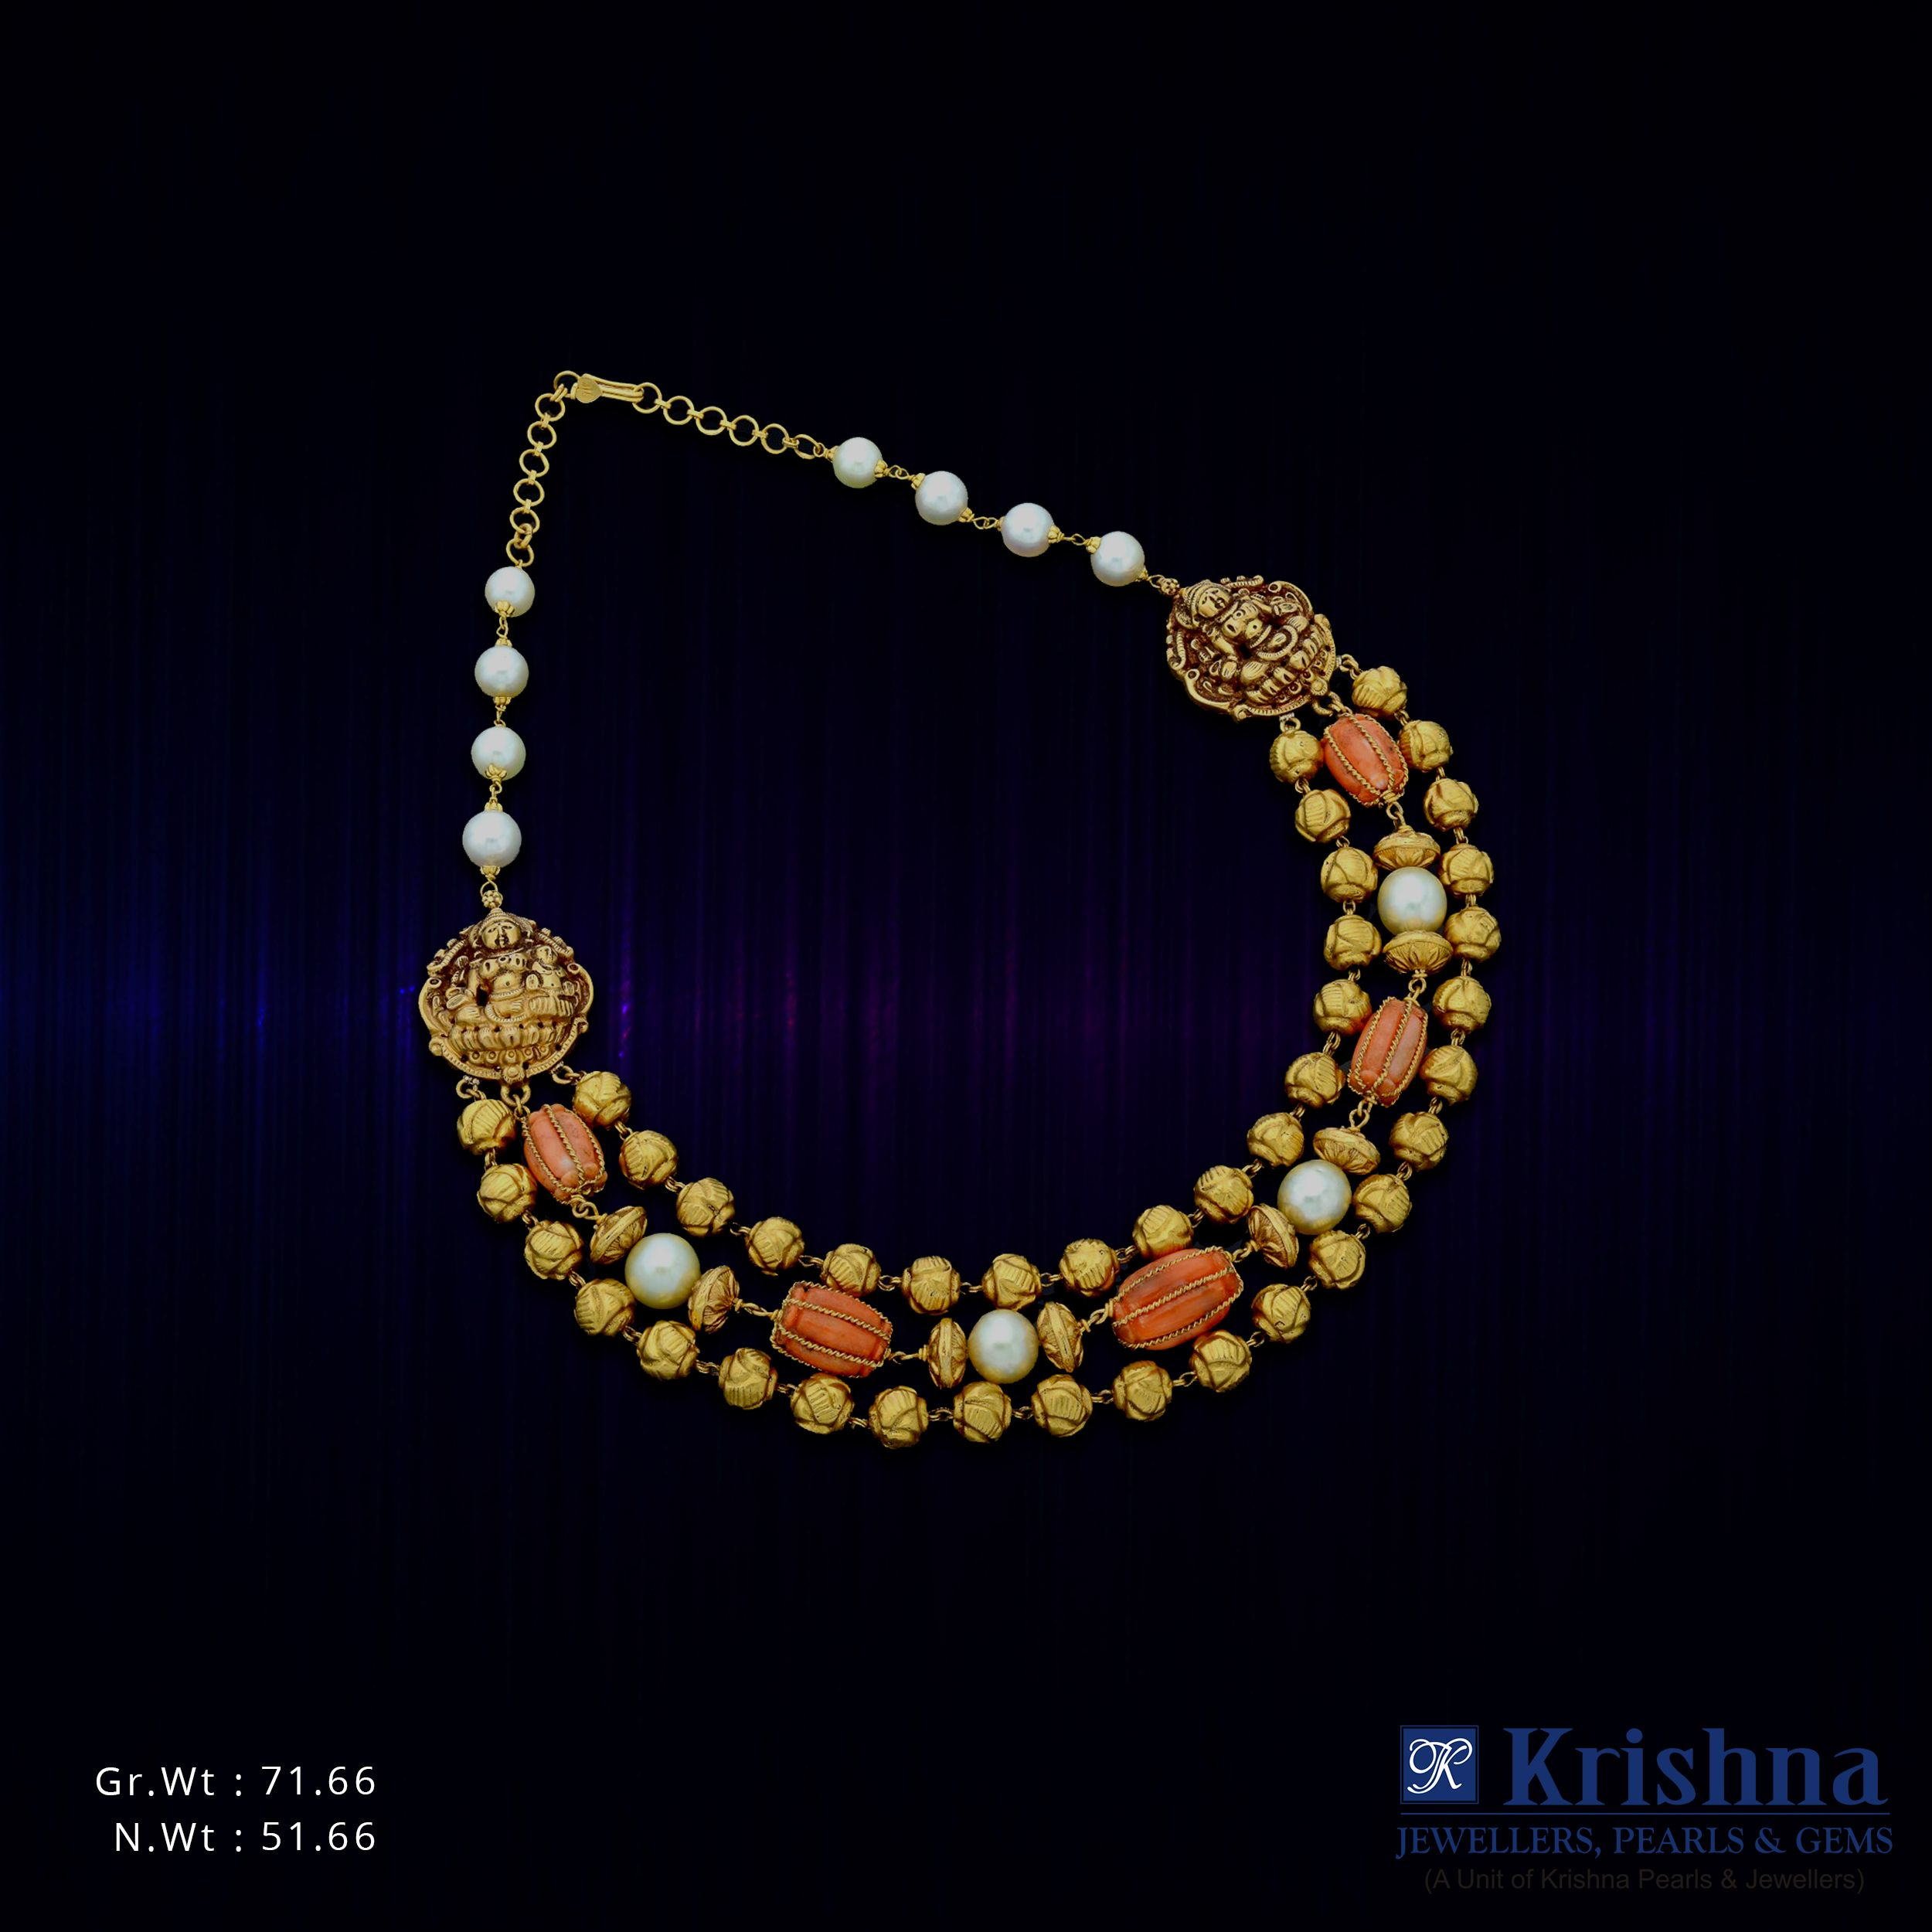 Gold and pearl temple jewellery that gives any traditional outfit an